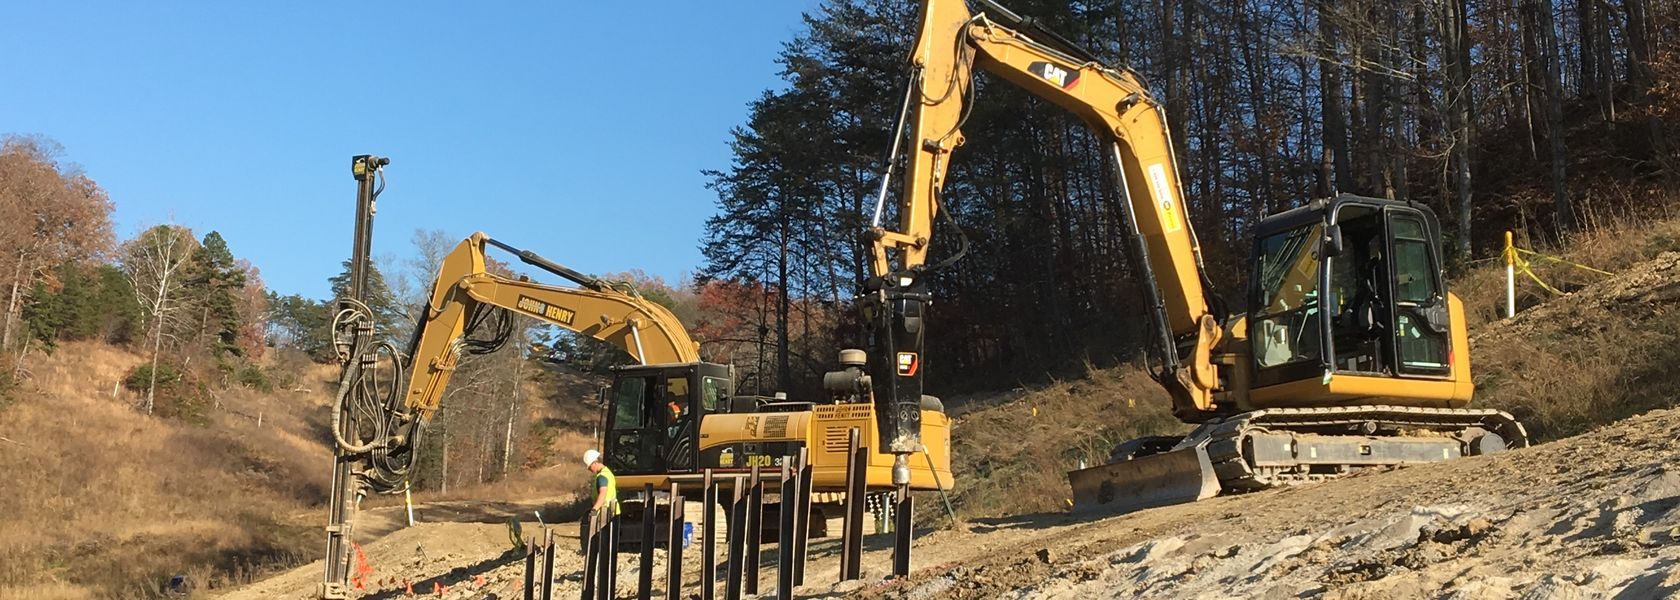 Protecting pipelines from slope movement